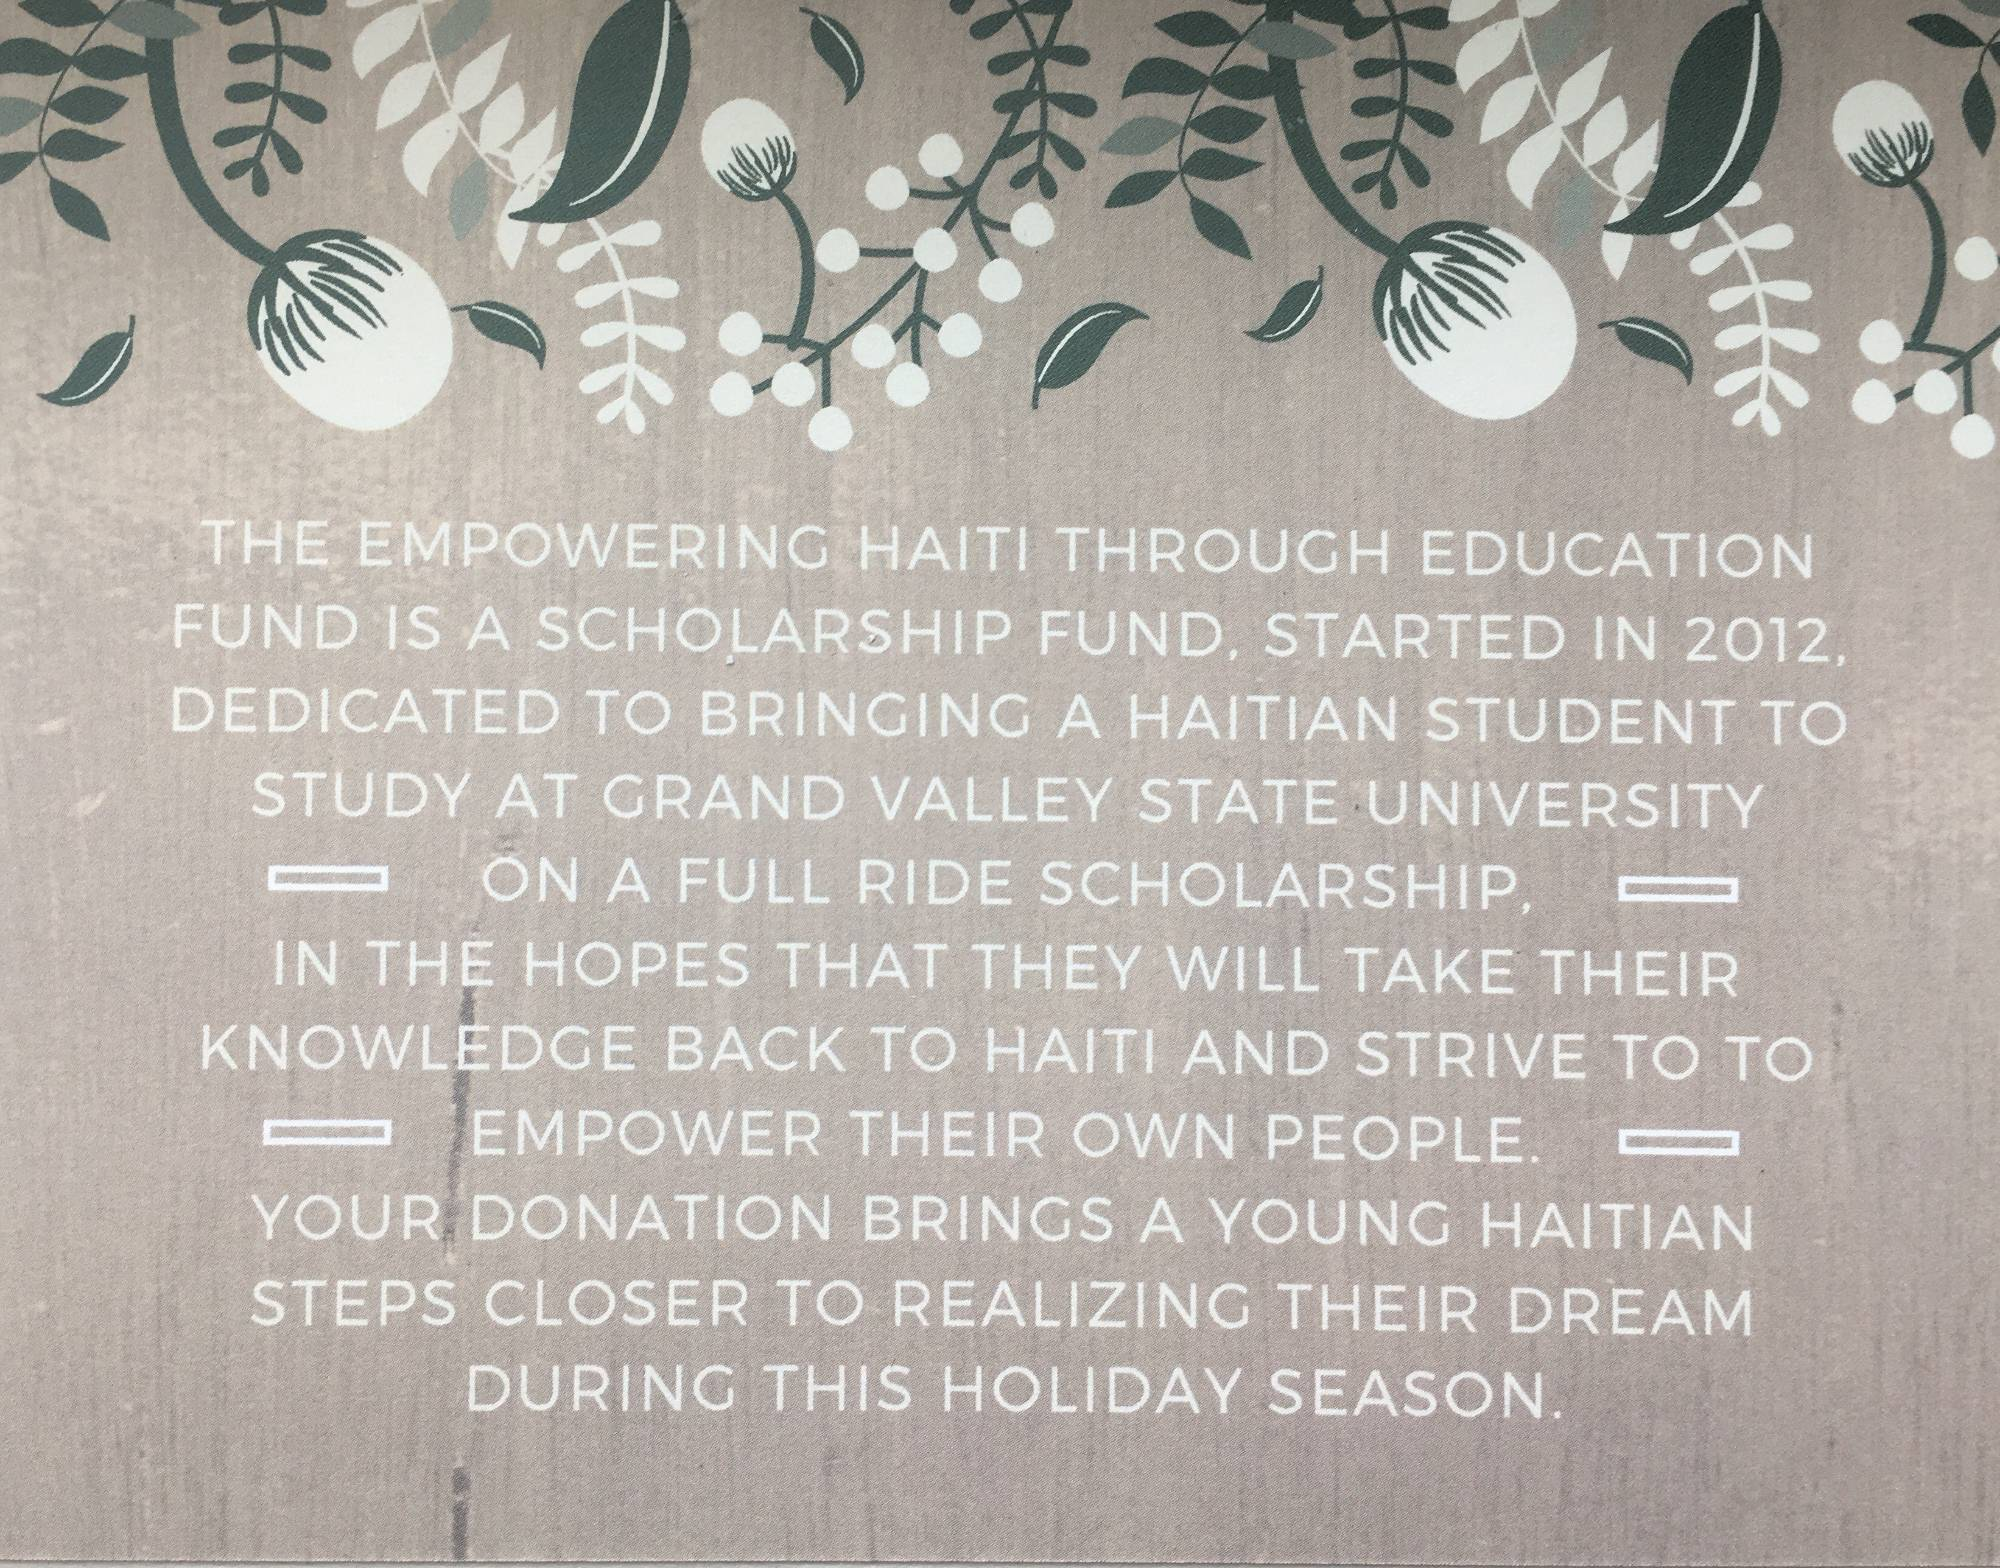 Empowering Haiti Through Education Fund Grand Valley